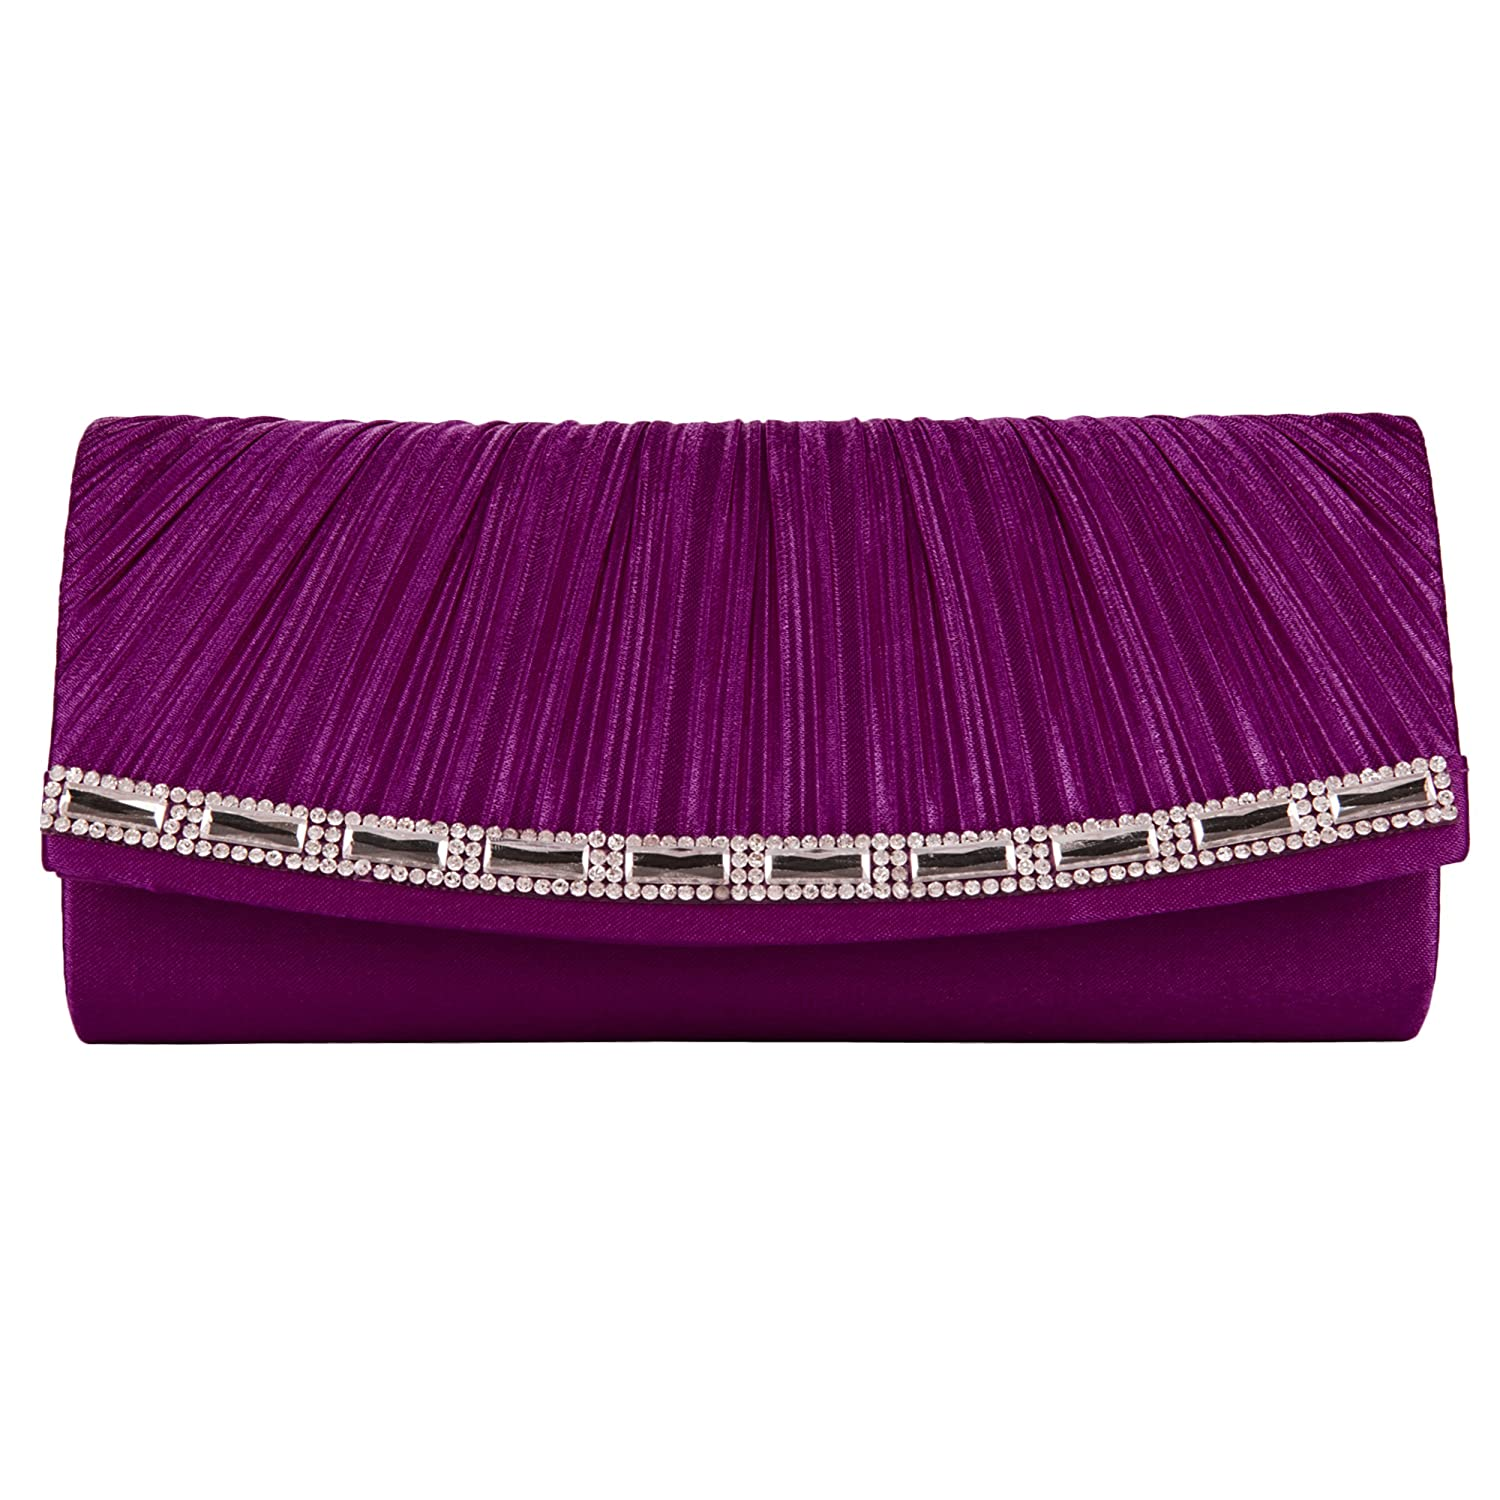 VanGoddy Mildred Collection Women/'s Diamond Clutch Handbag Carrying Case